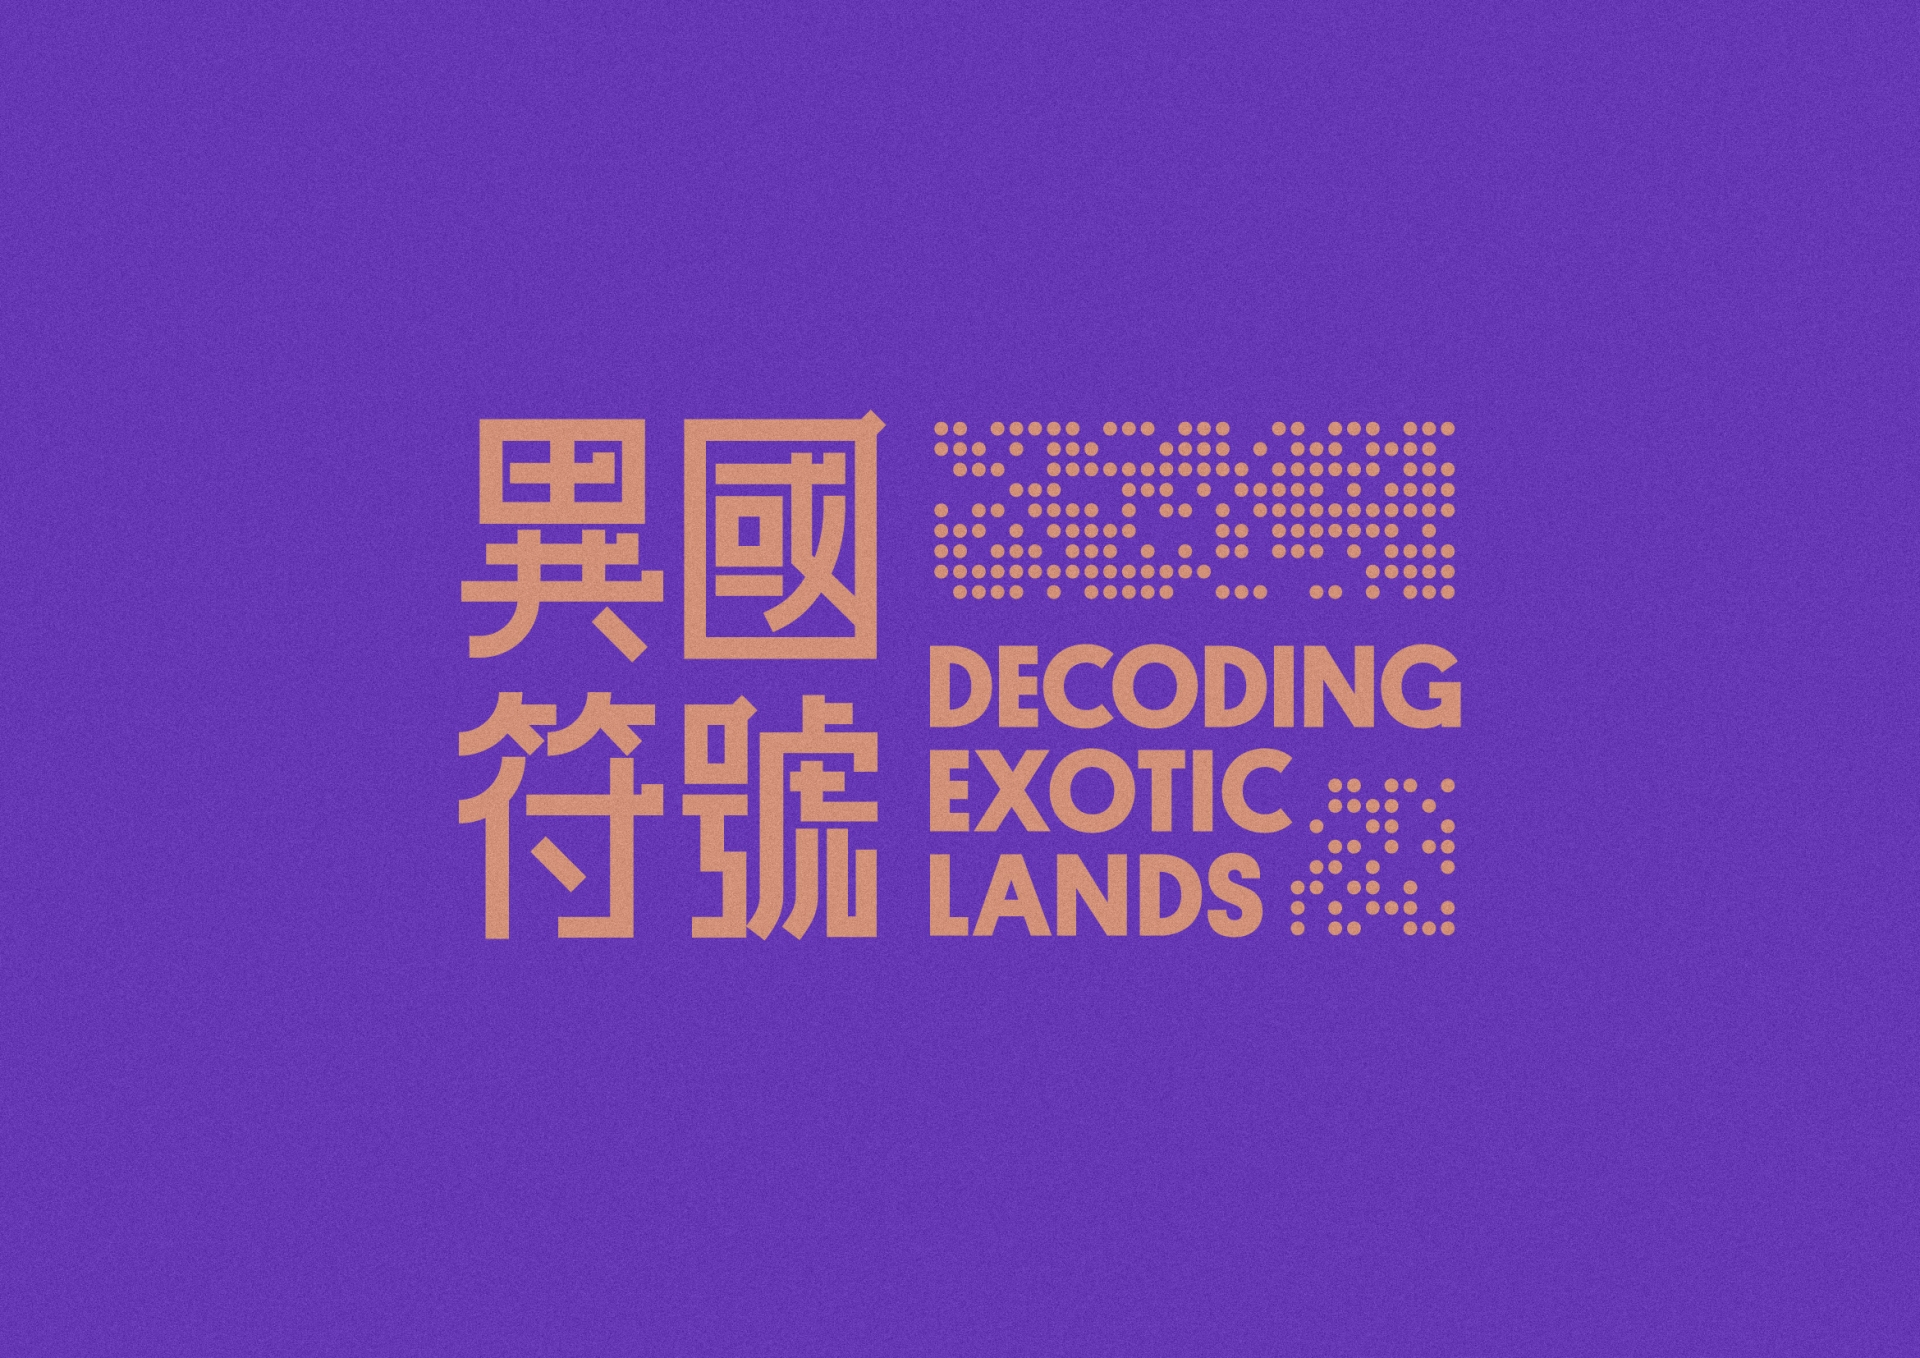 Good Morning Design # Arttravellers Exhibition Series I: Decoding Exotic Land